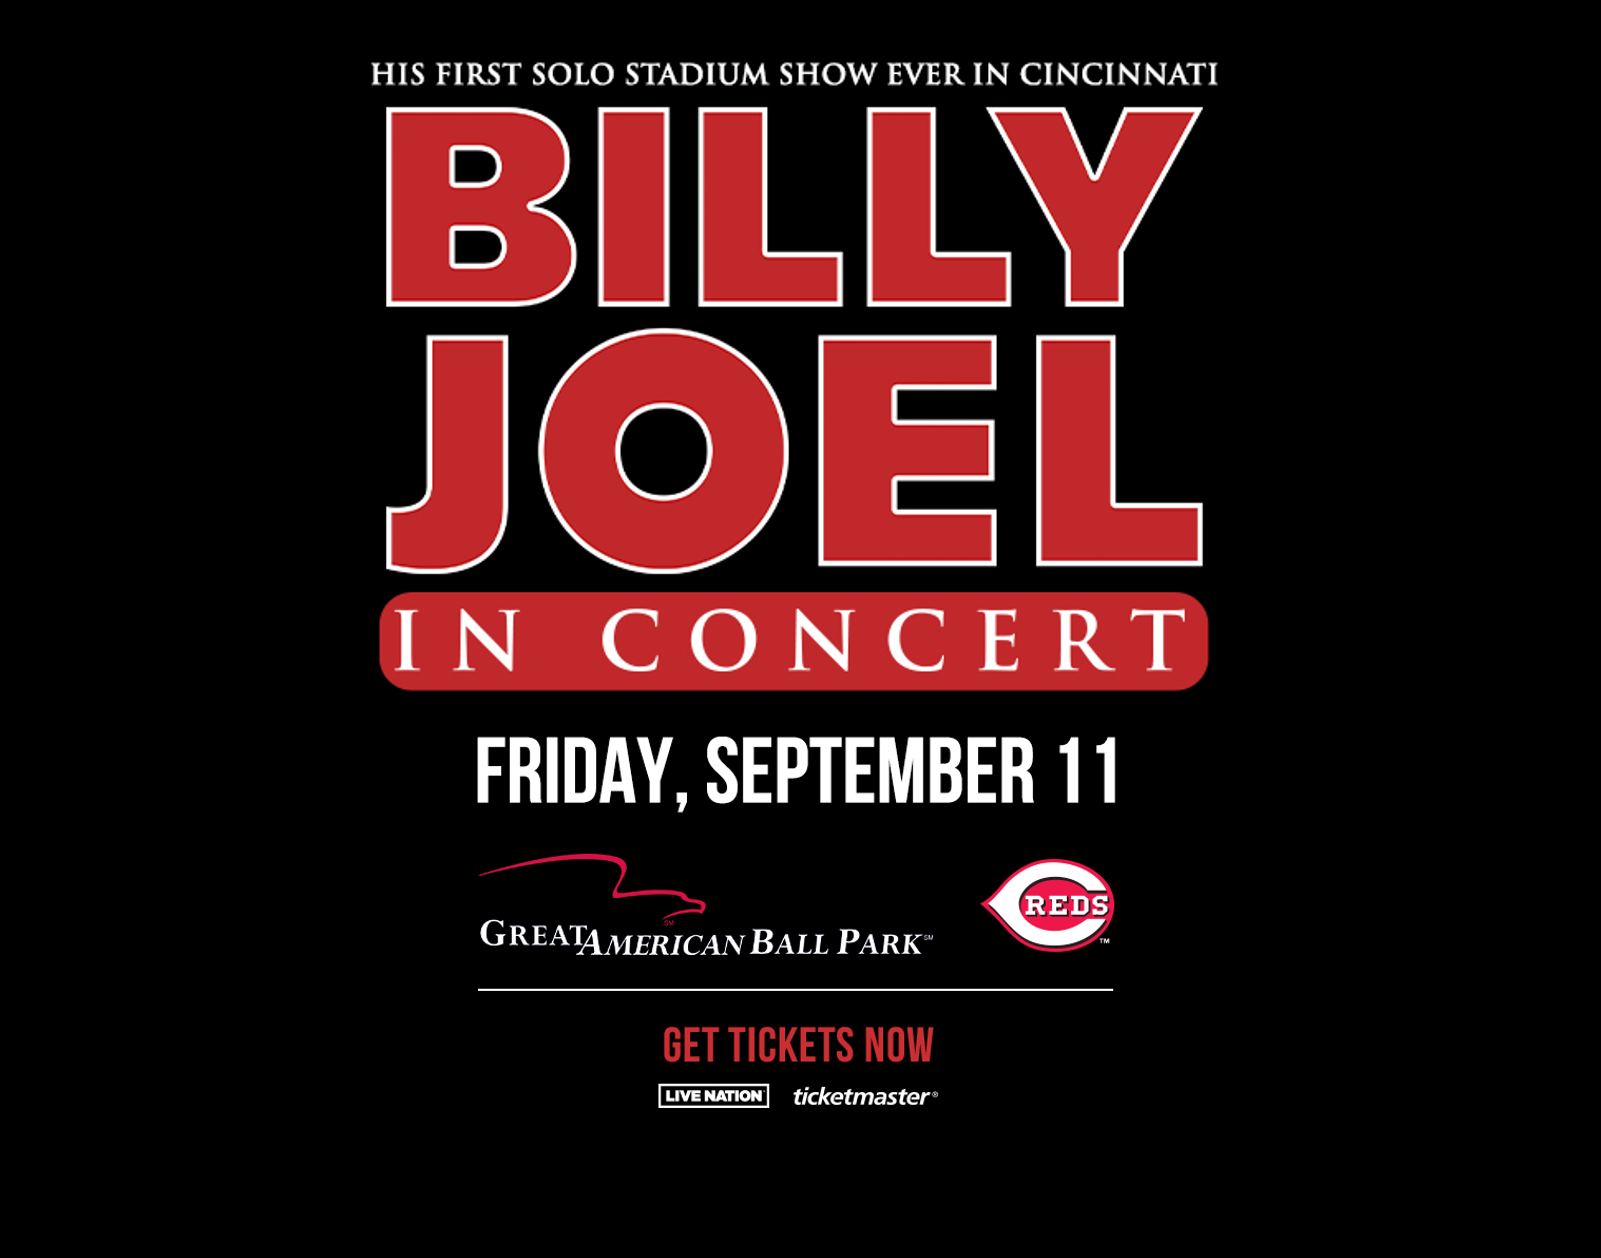 The FOX Welcomes Billy Joel